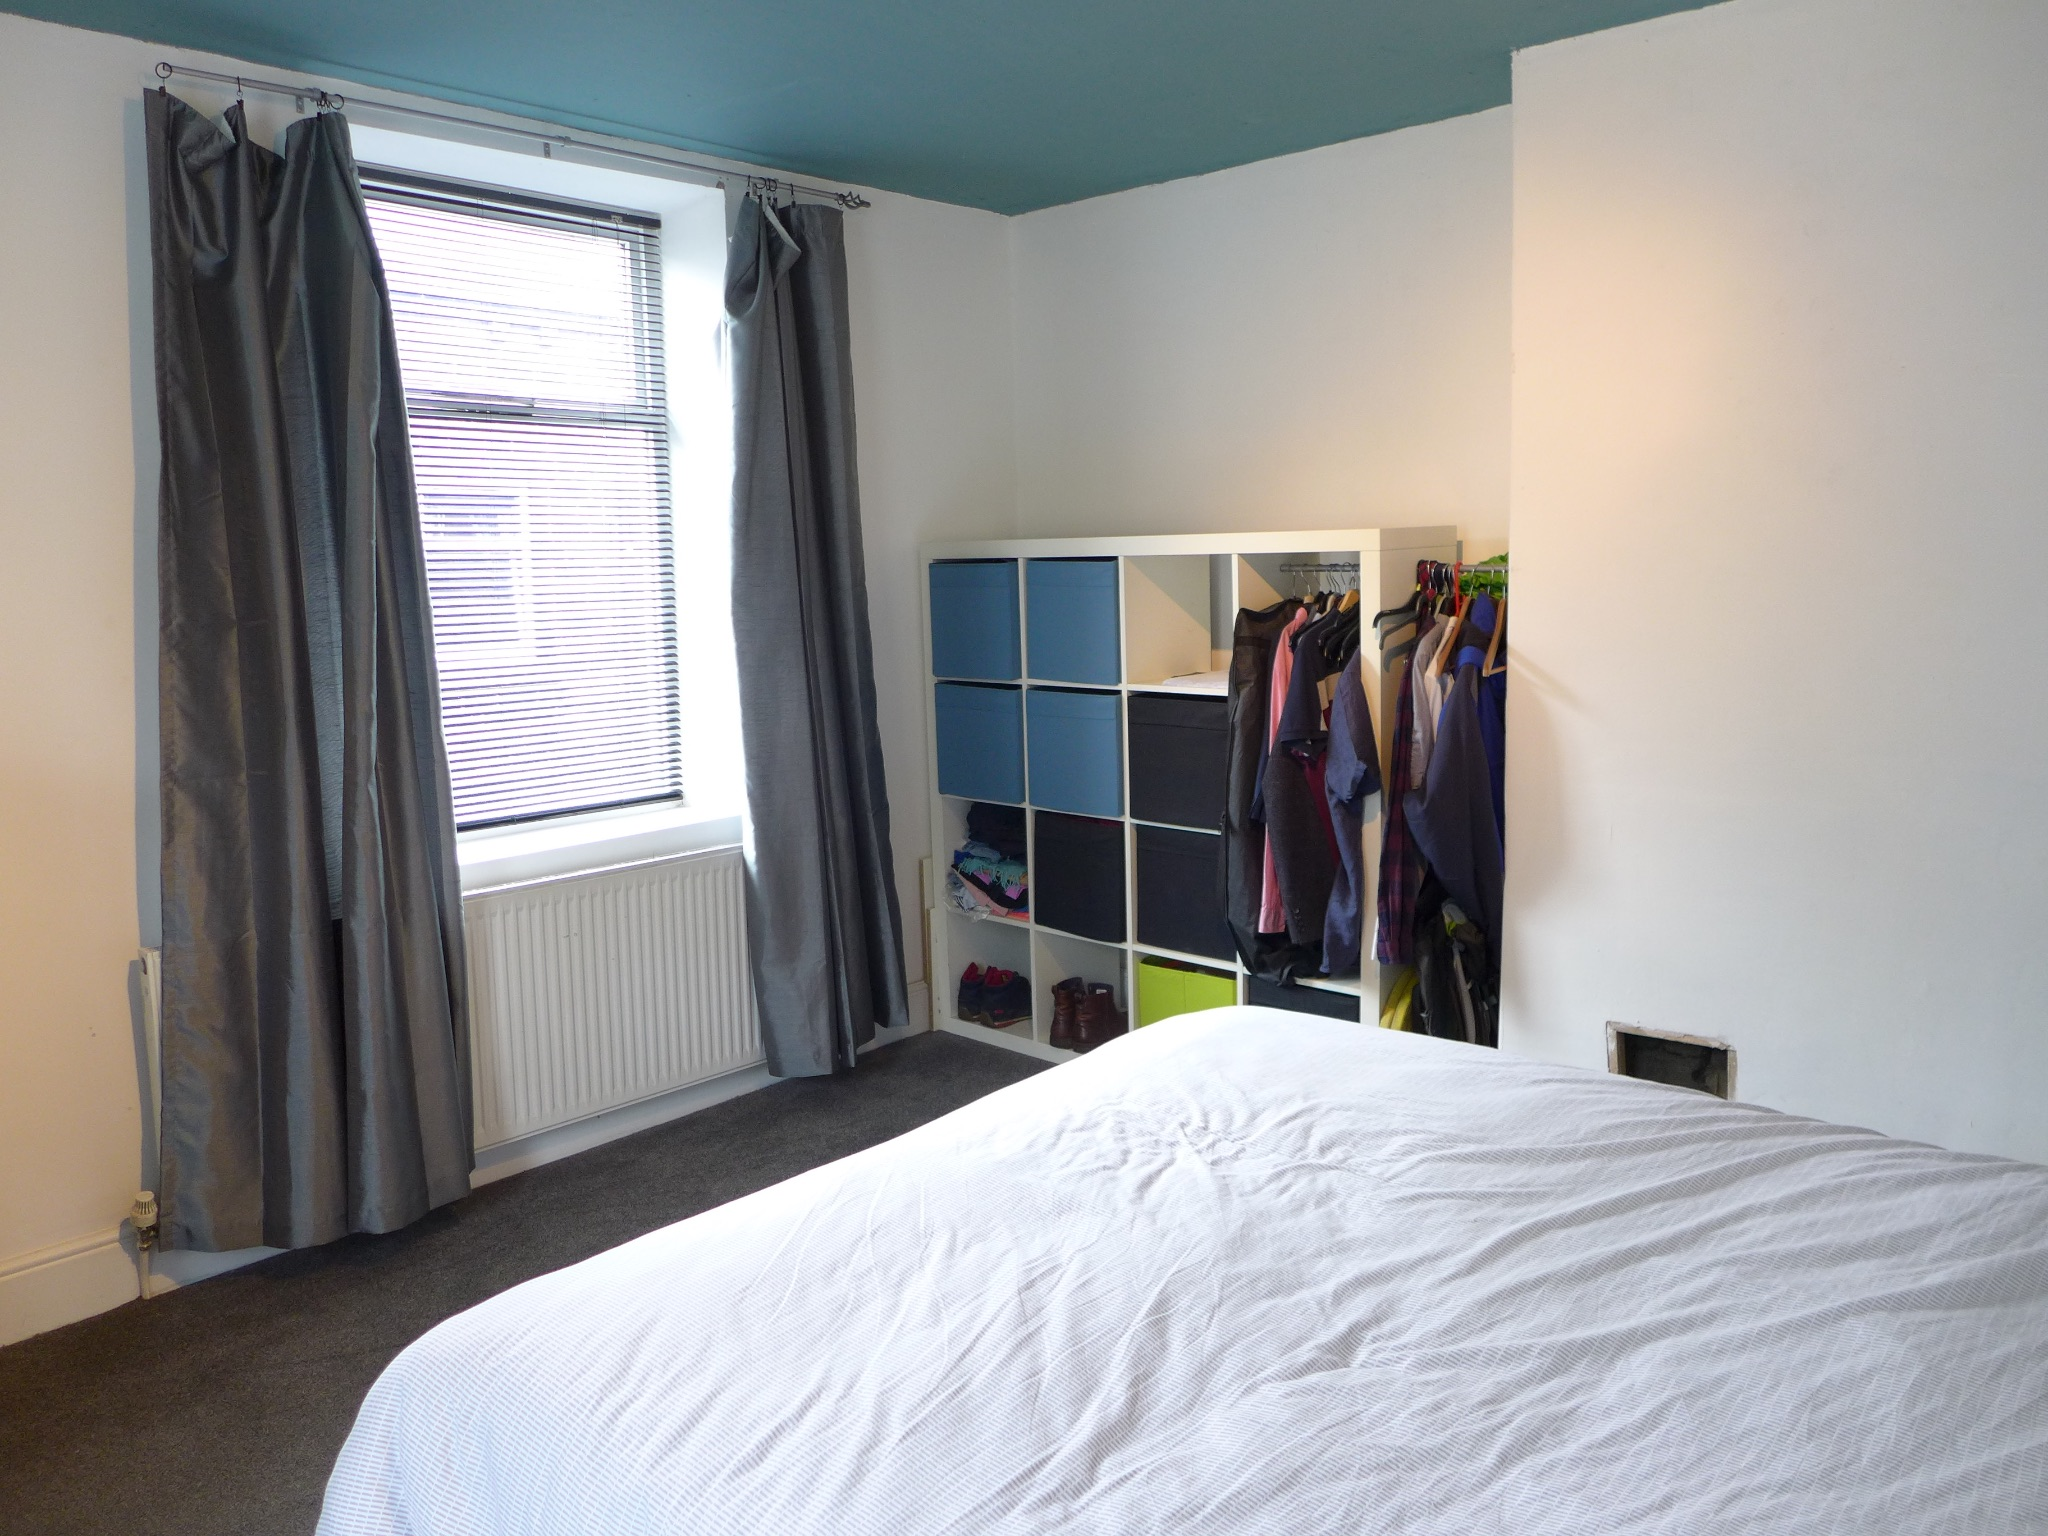 3 bedroom end terraced house For Sale in Todmorden - Photograph 8.